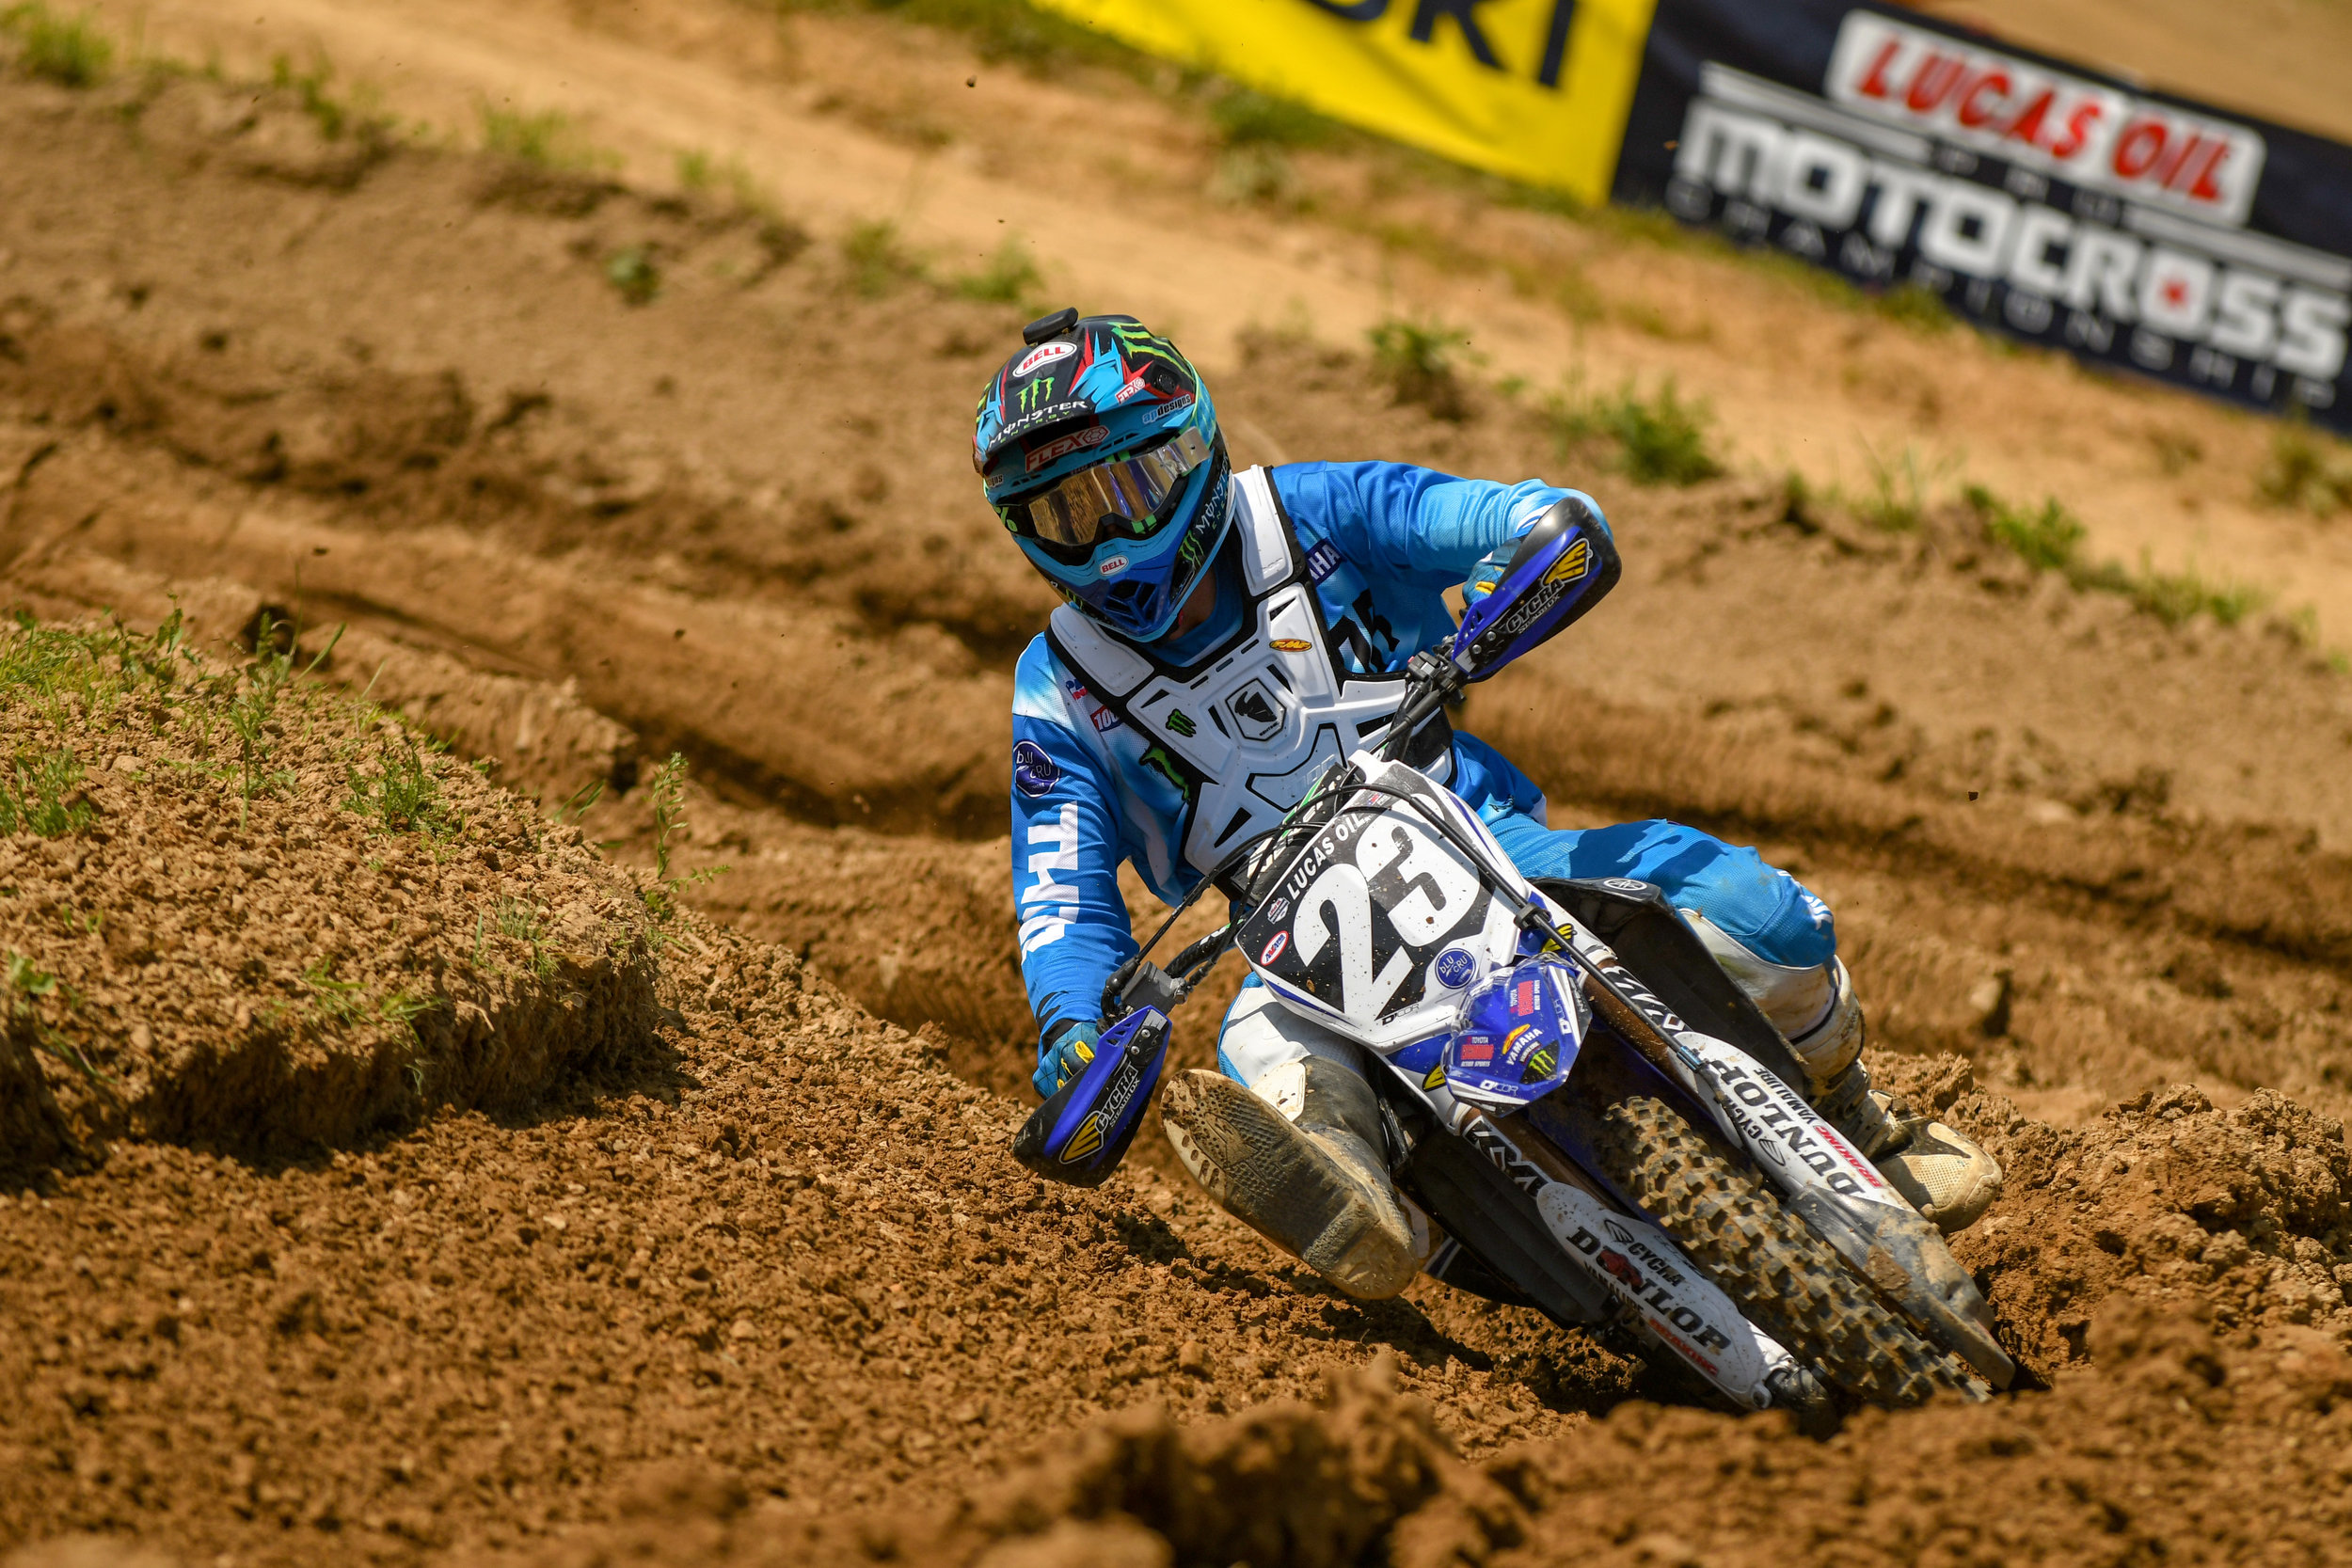 Aaron Plessinger at High Point Raceway